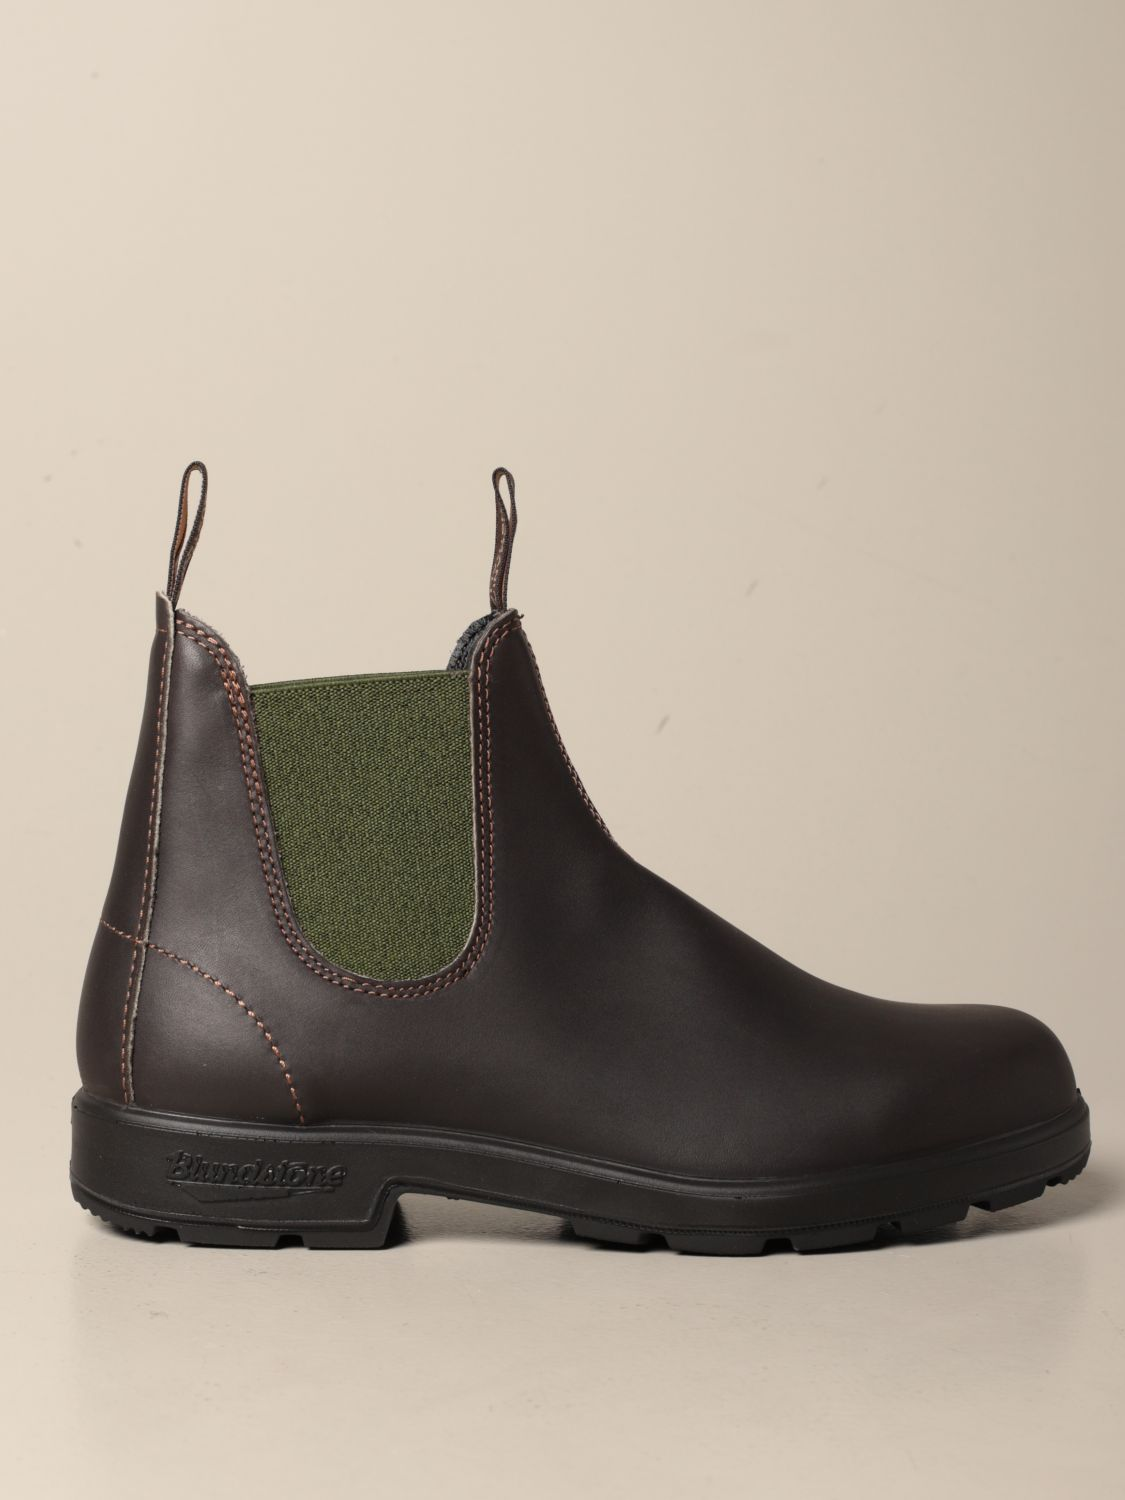 Boots Blundstone: Boots men Blundstone olive 1